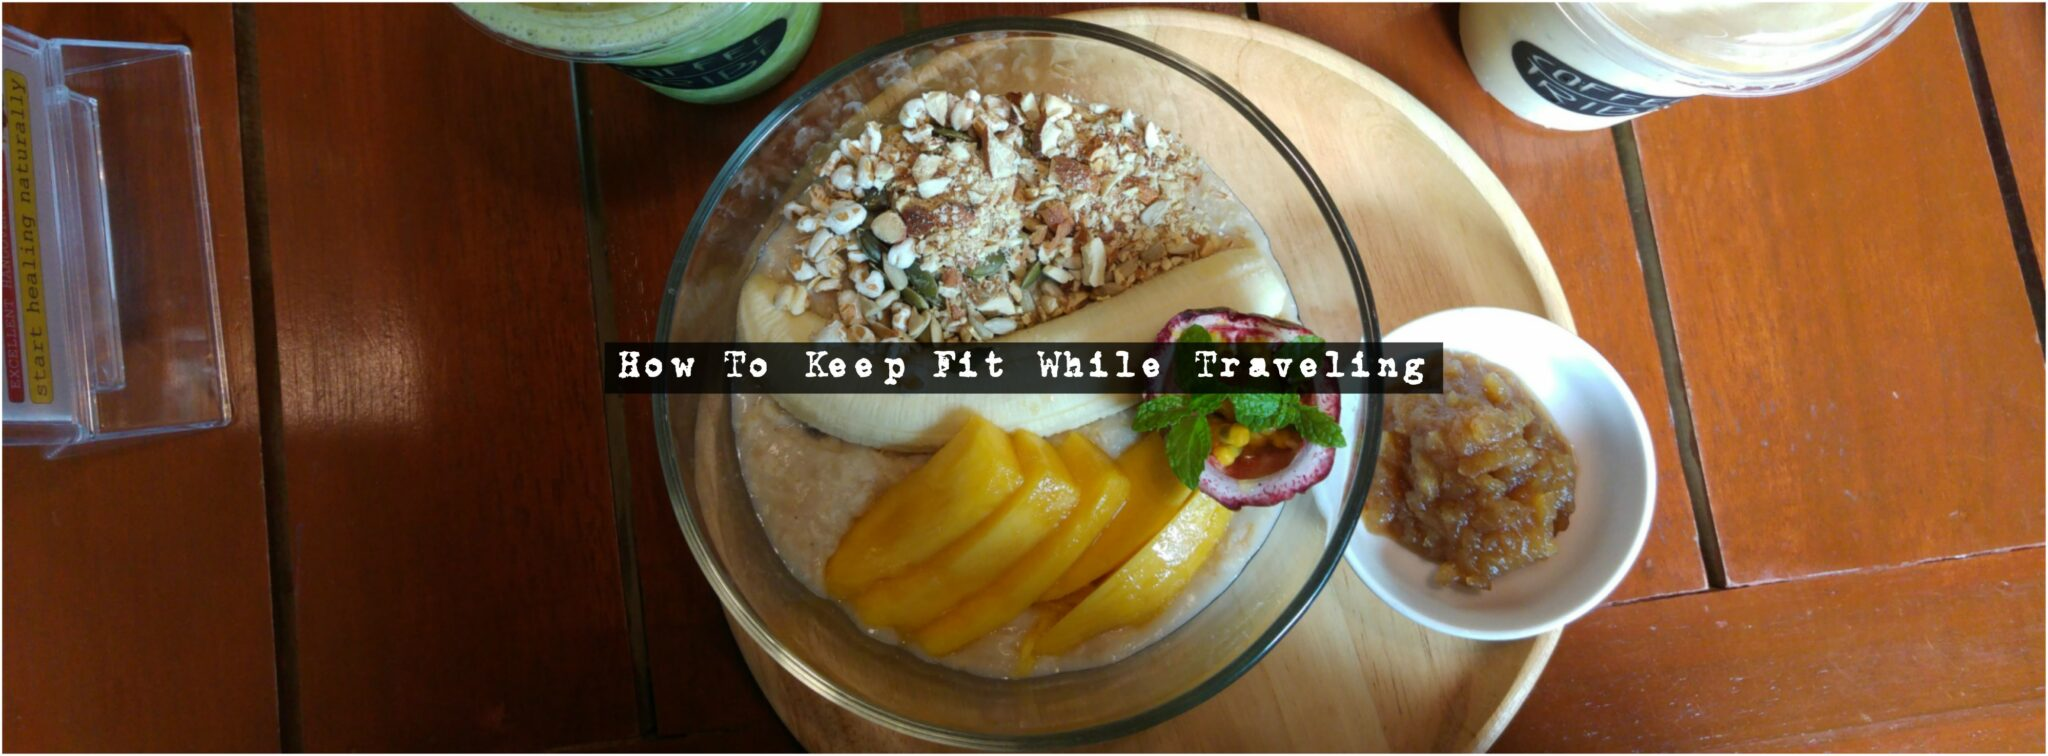 7 Tips On How To Stay Fit While Traveling